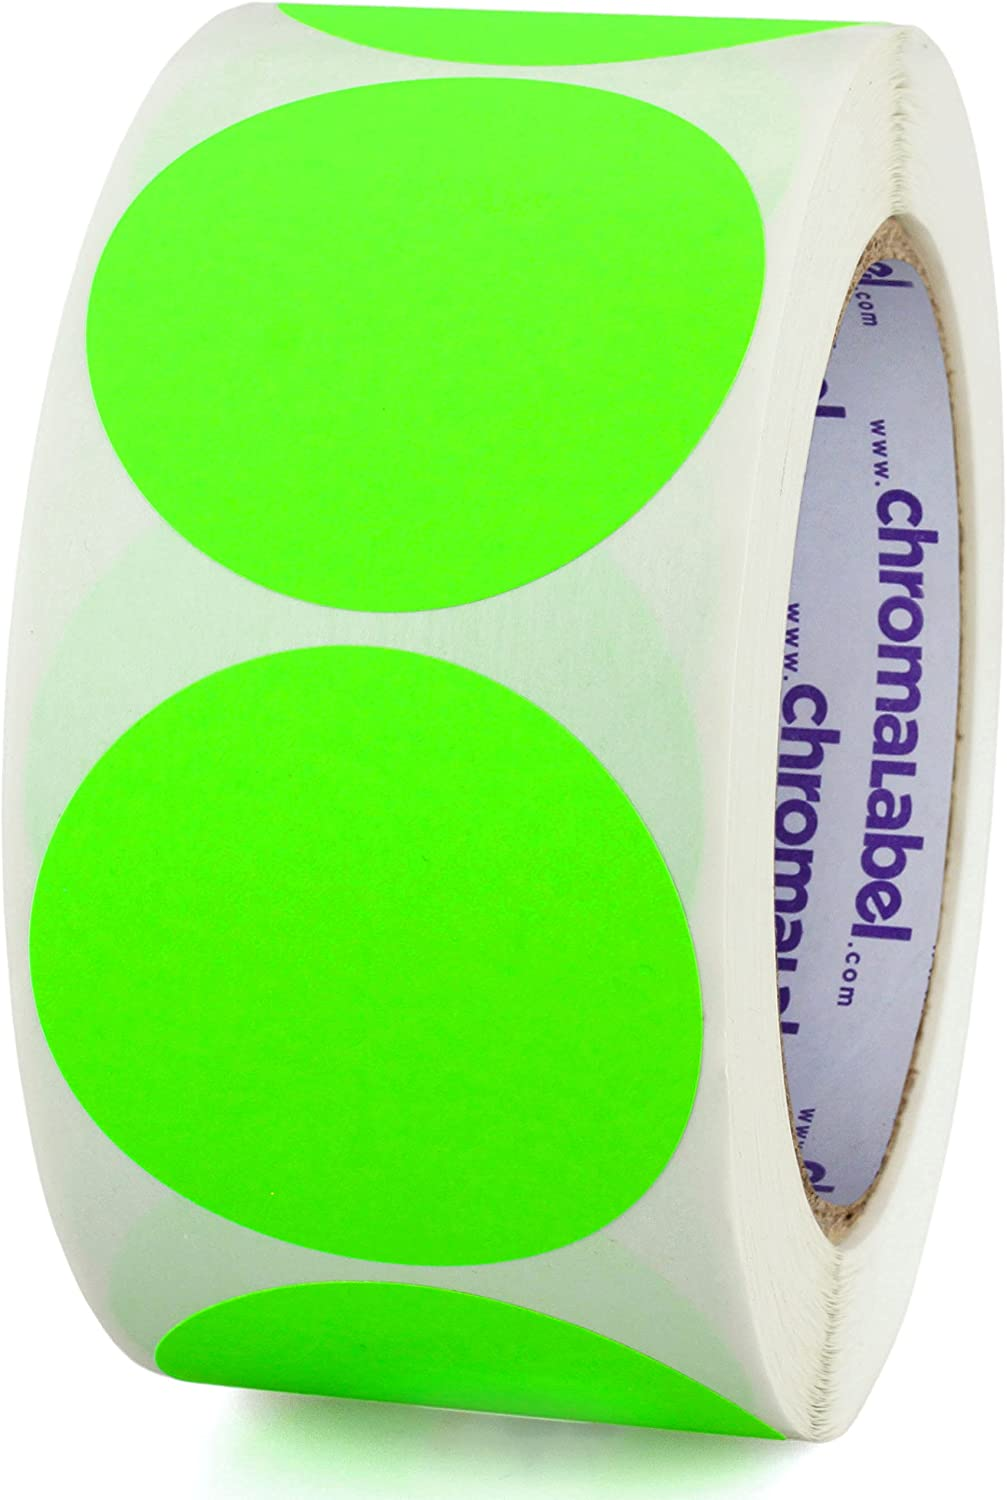 ChromaLabel 2 Inch Round Removable Color-Code Dot Stickers, Inventory Labels, 500/Roll, Fluorescent Green